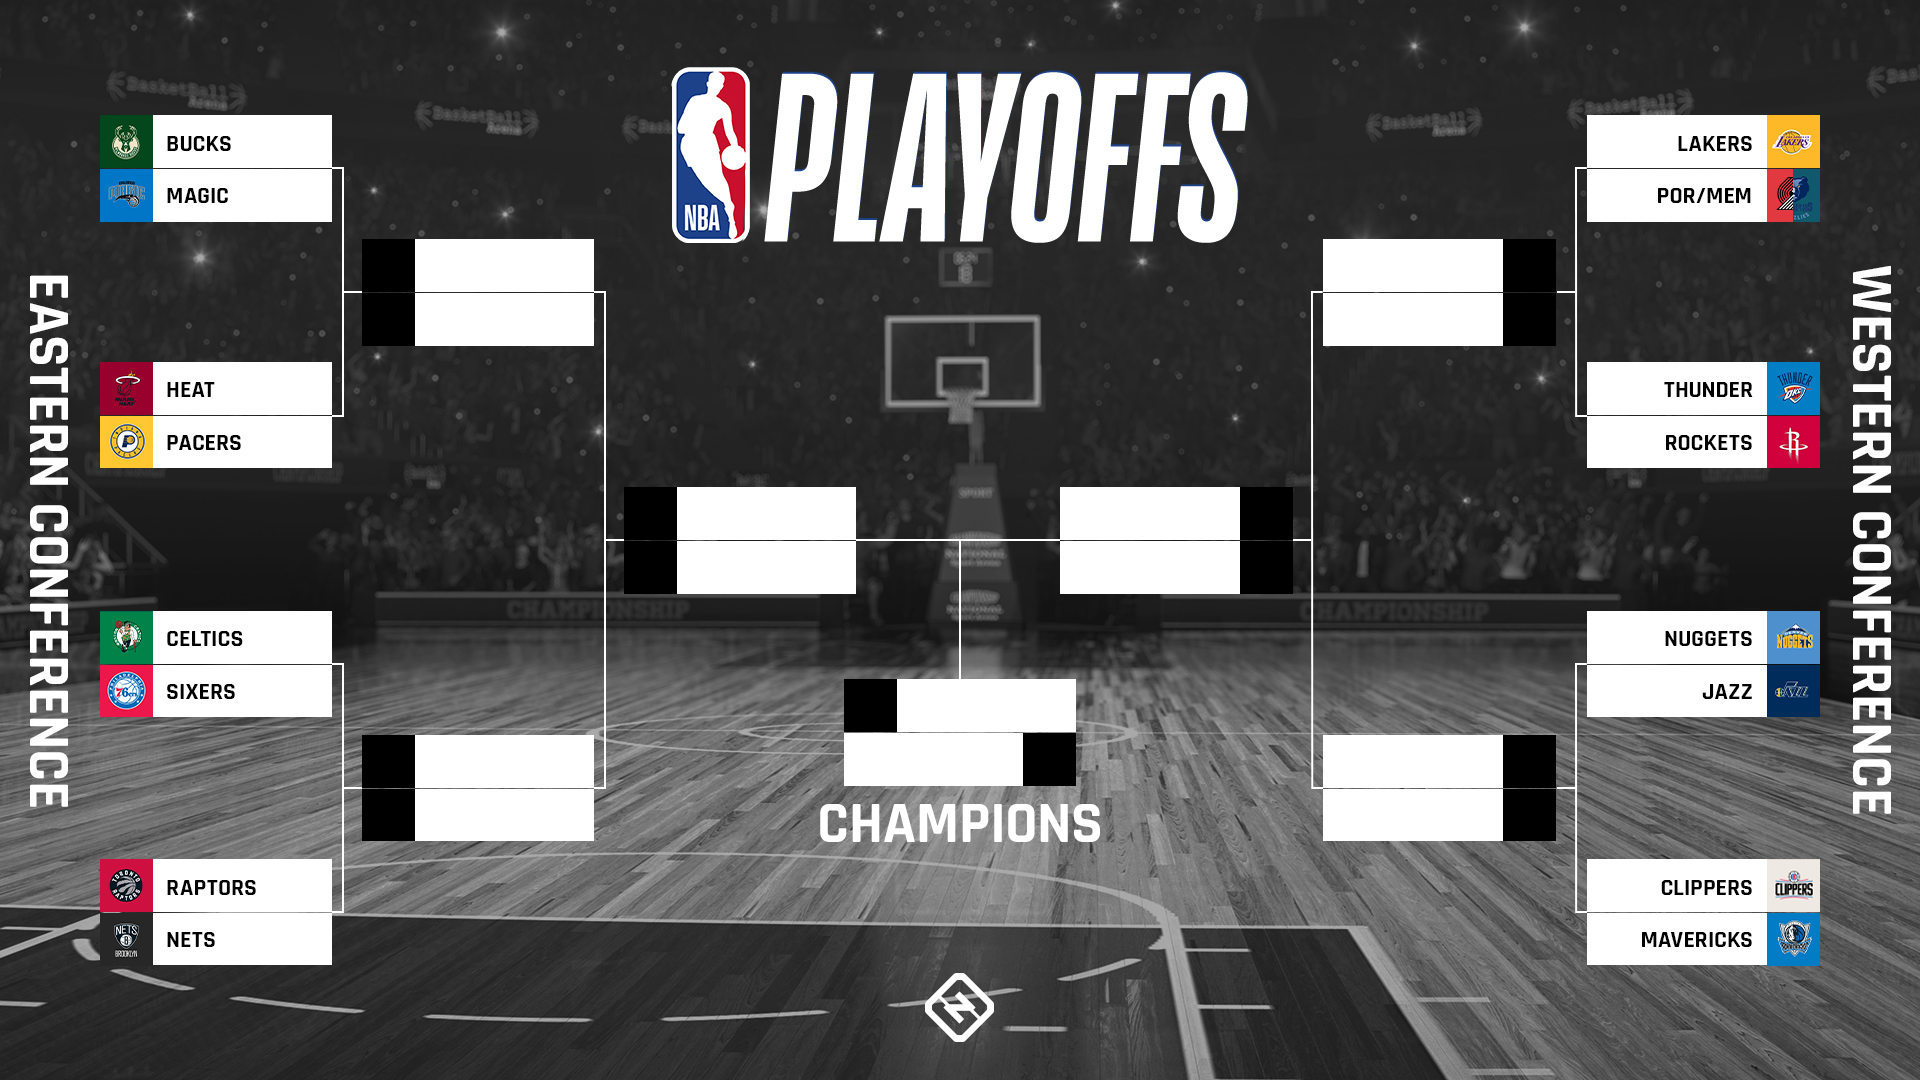 NBA playoff bracket predictions, picks, odds & series breakdowns for the 2020 bubble 1